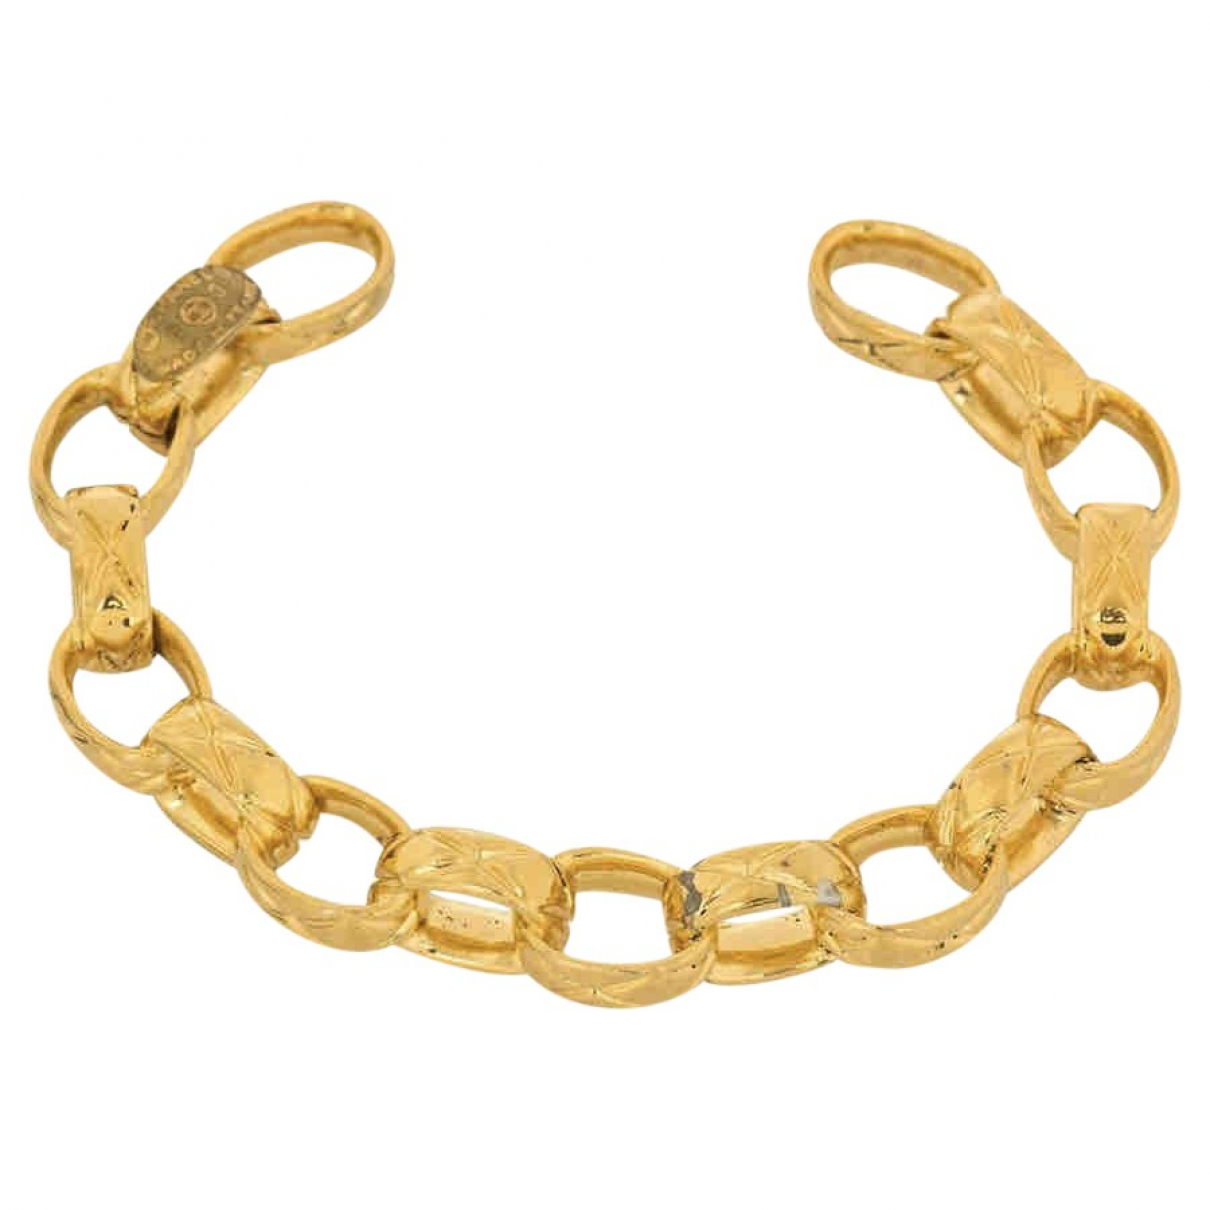 Chanel Coco Crush Armband in  Gold Metall